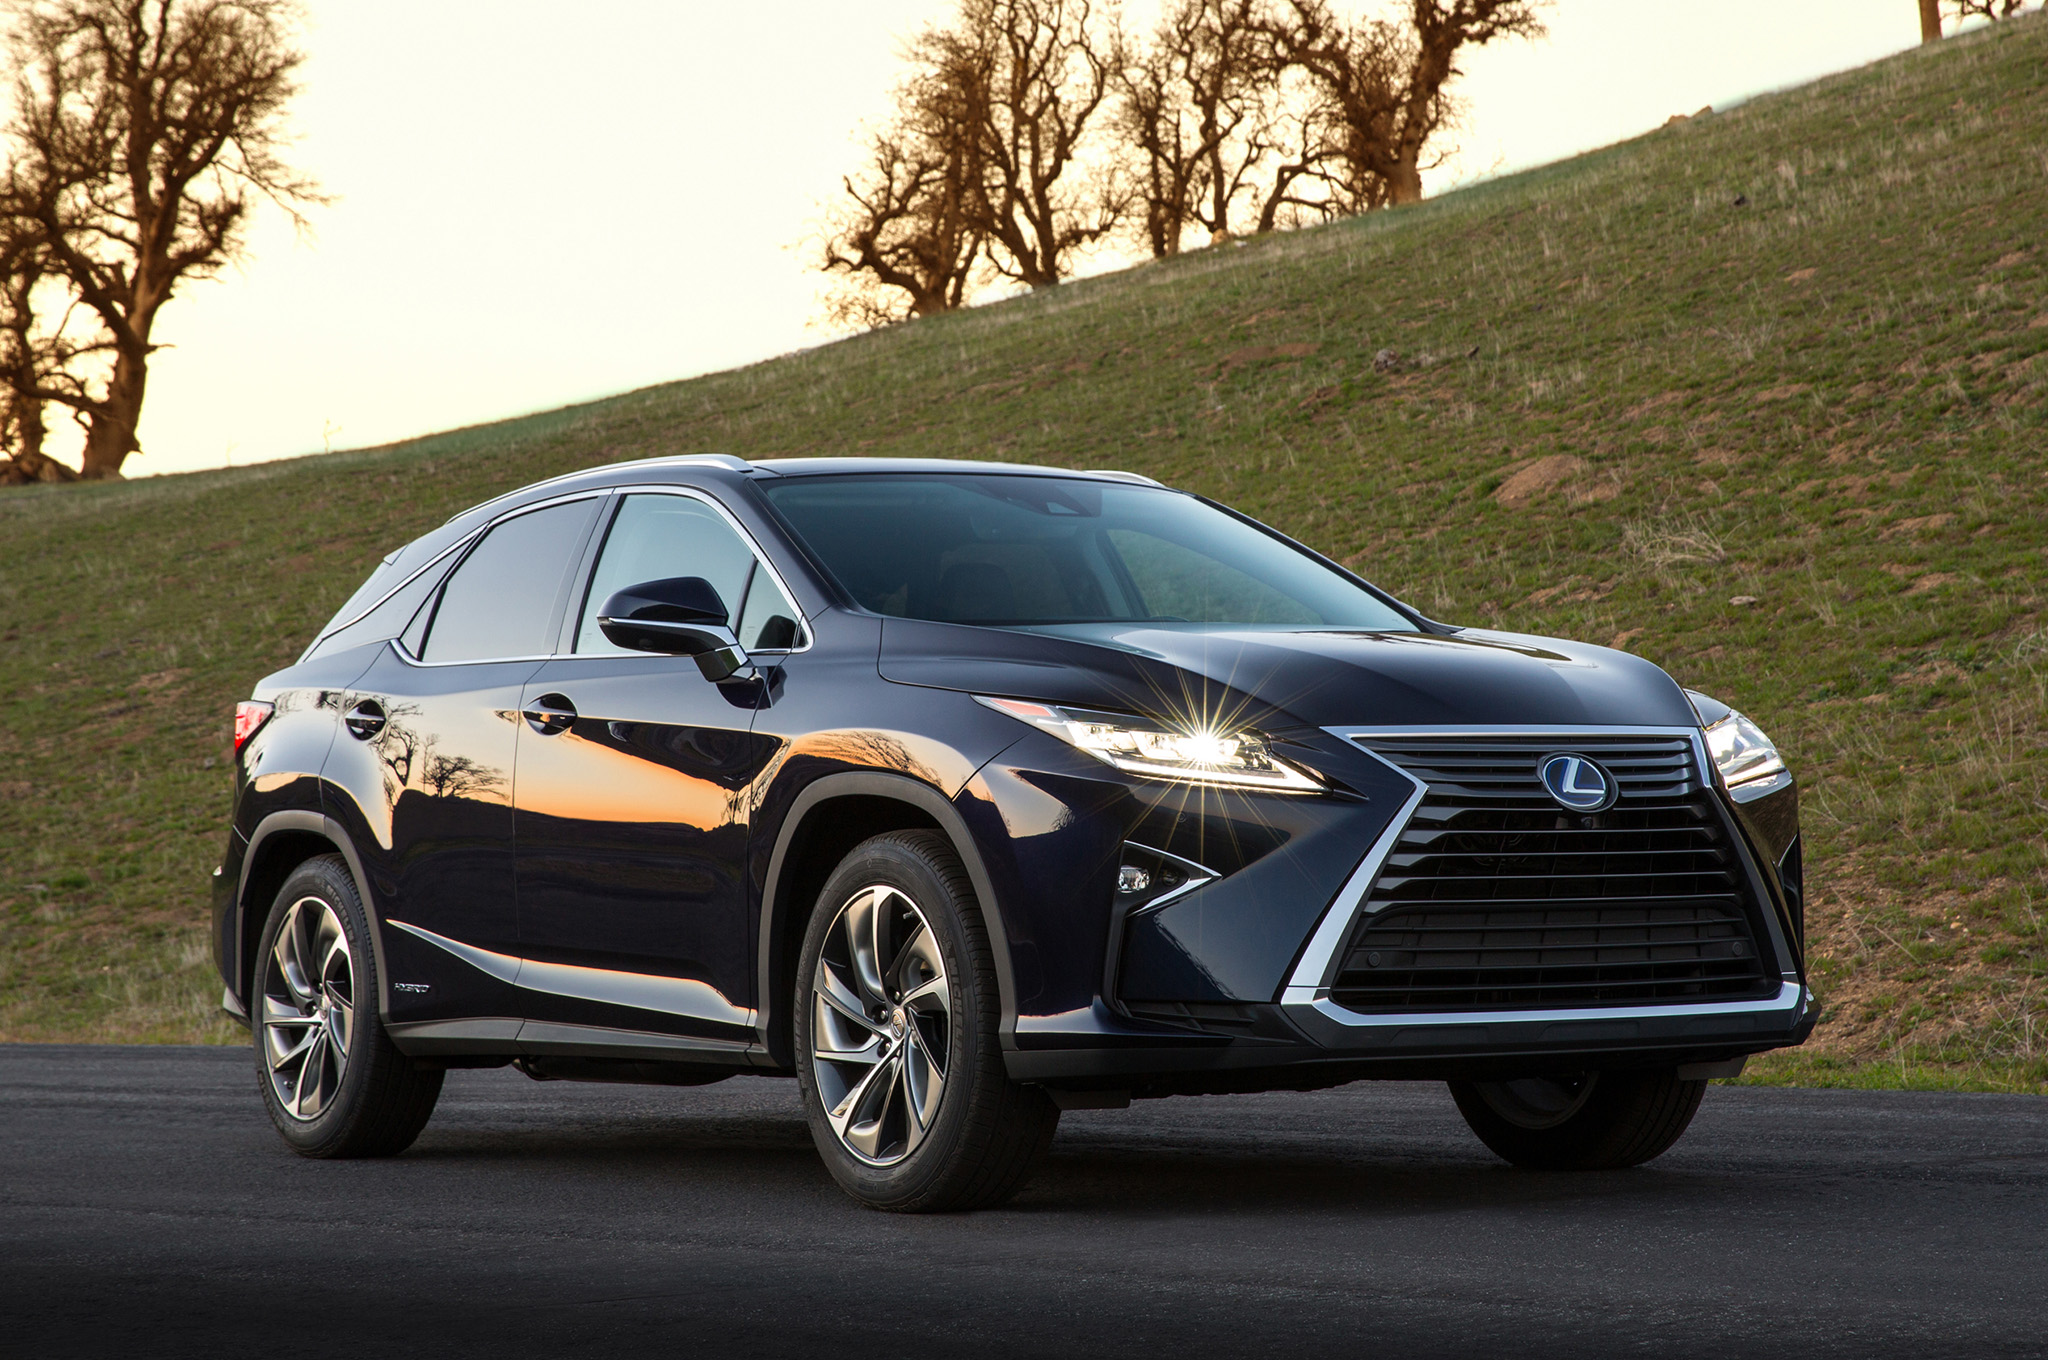 The 2016 Lexus RX gets a boost of refinement